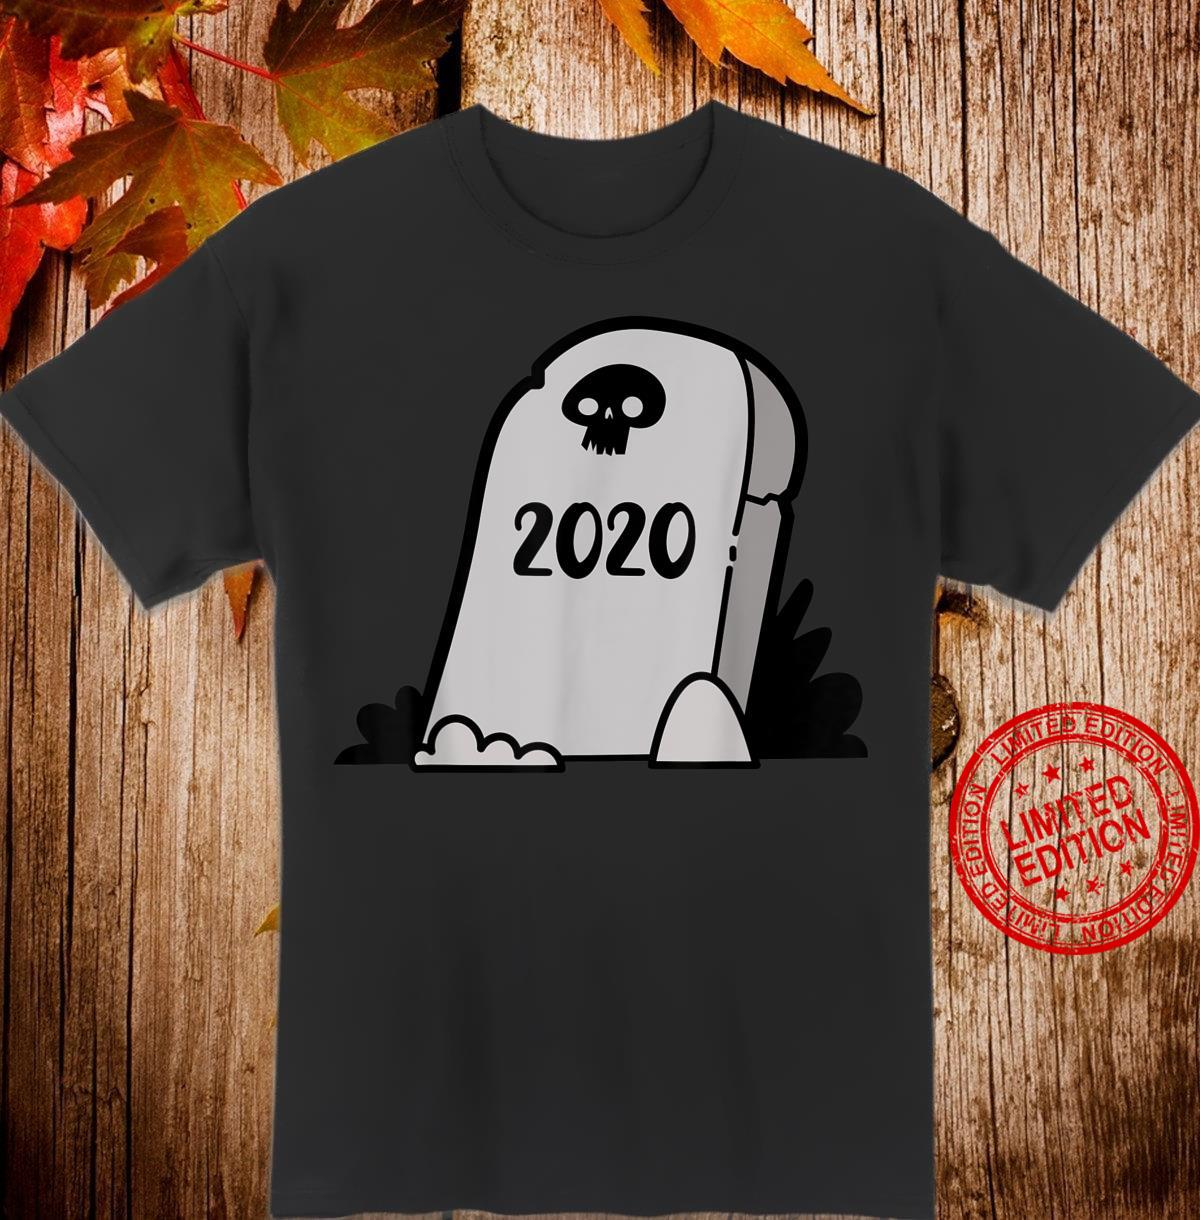 2020 Halloween, Cartoon Gravestone, Quarantine Shirt